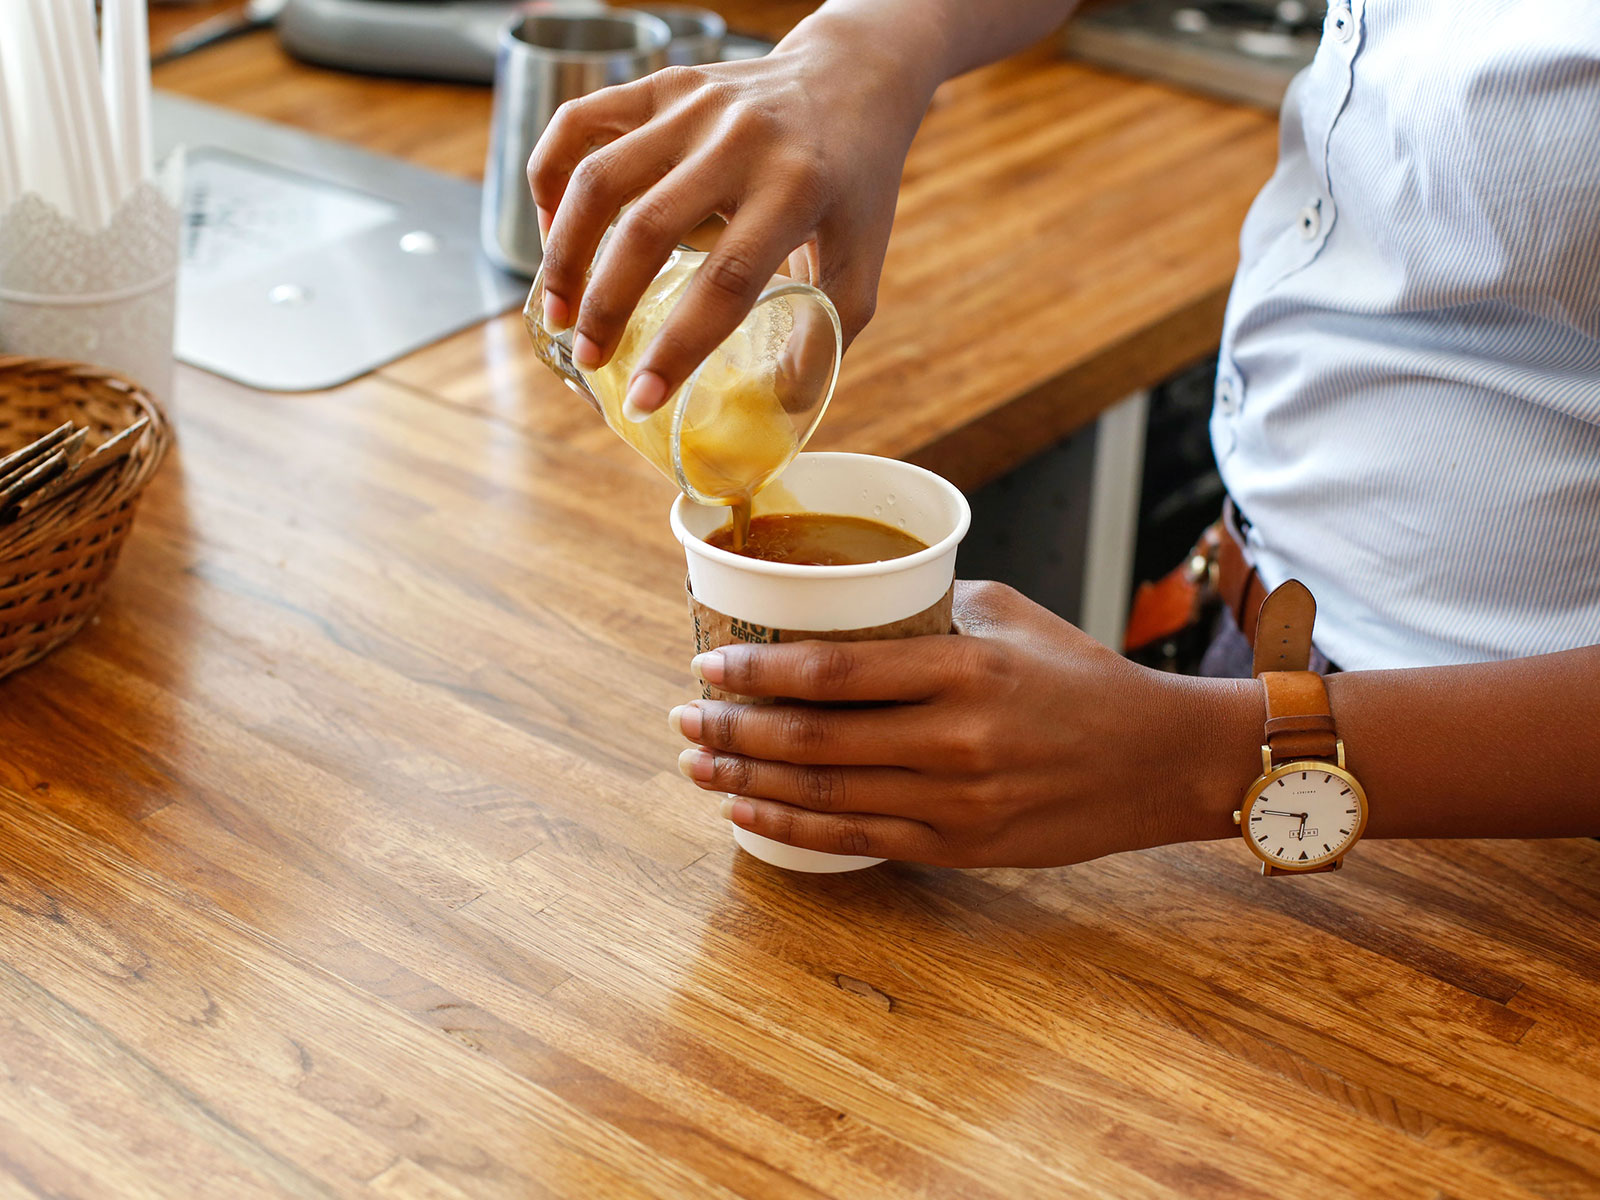 pouring espresso into a to go cup in newark new jersey